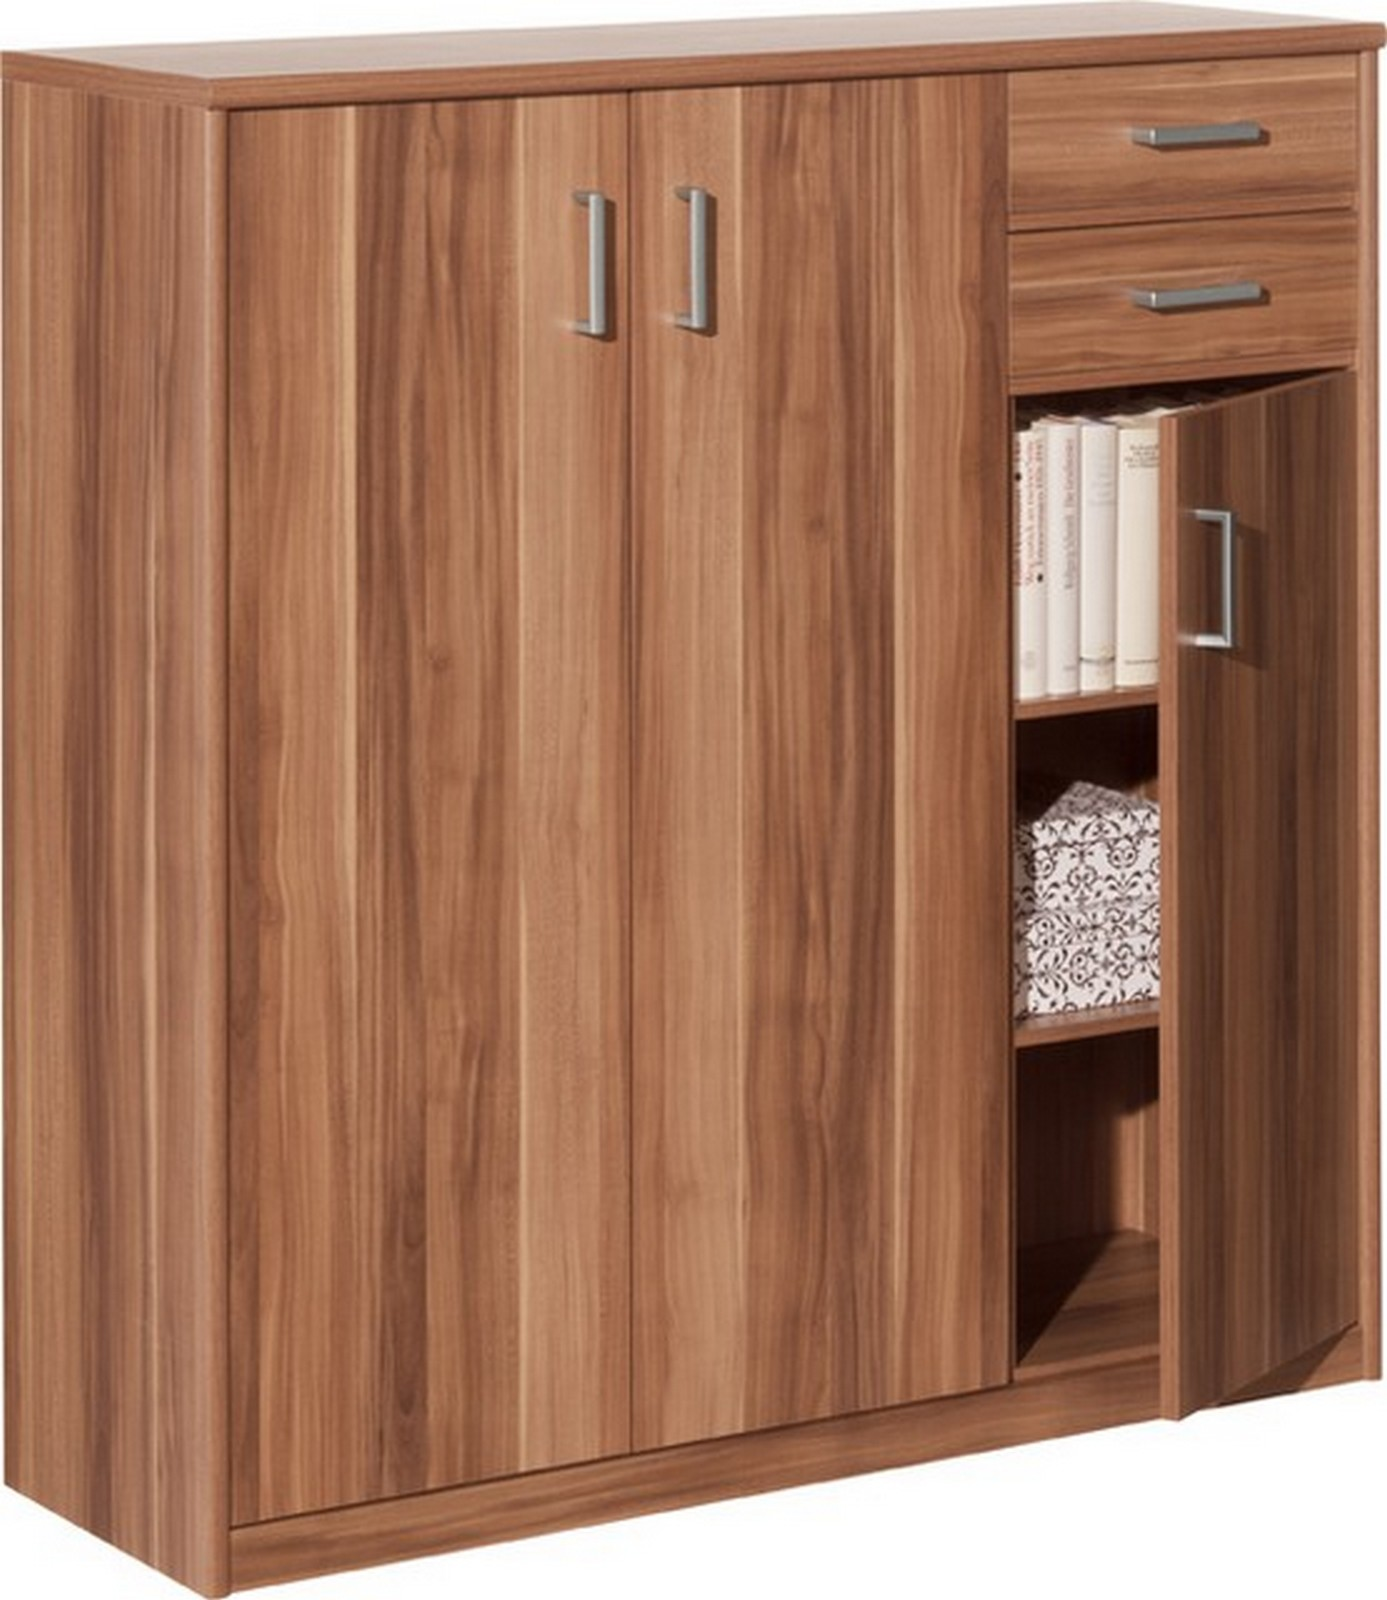 Kommode Nussbaum Kommode Soft Plus Nussbaum Highboard 2415007 08 Ebay